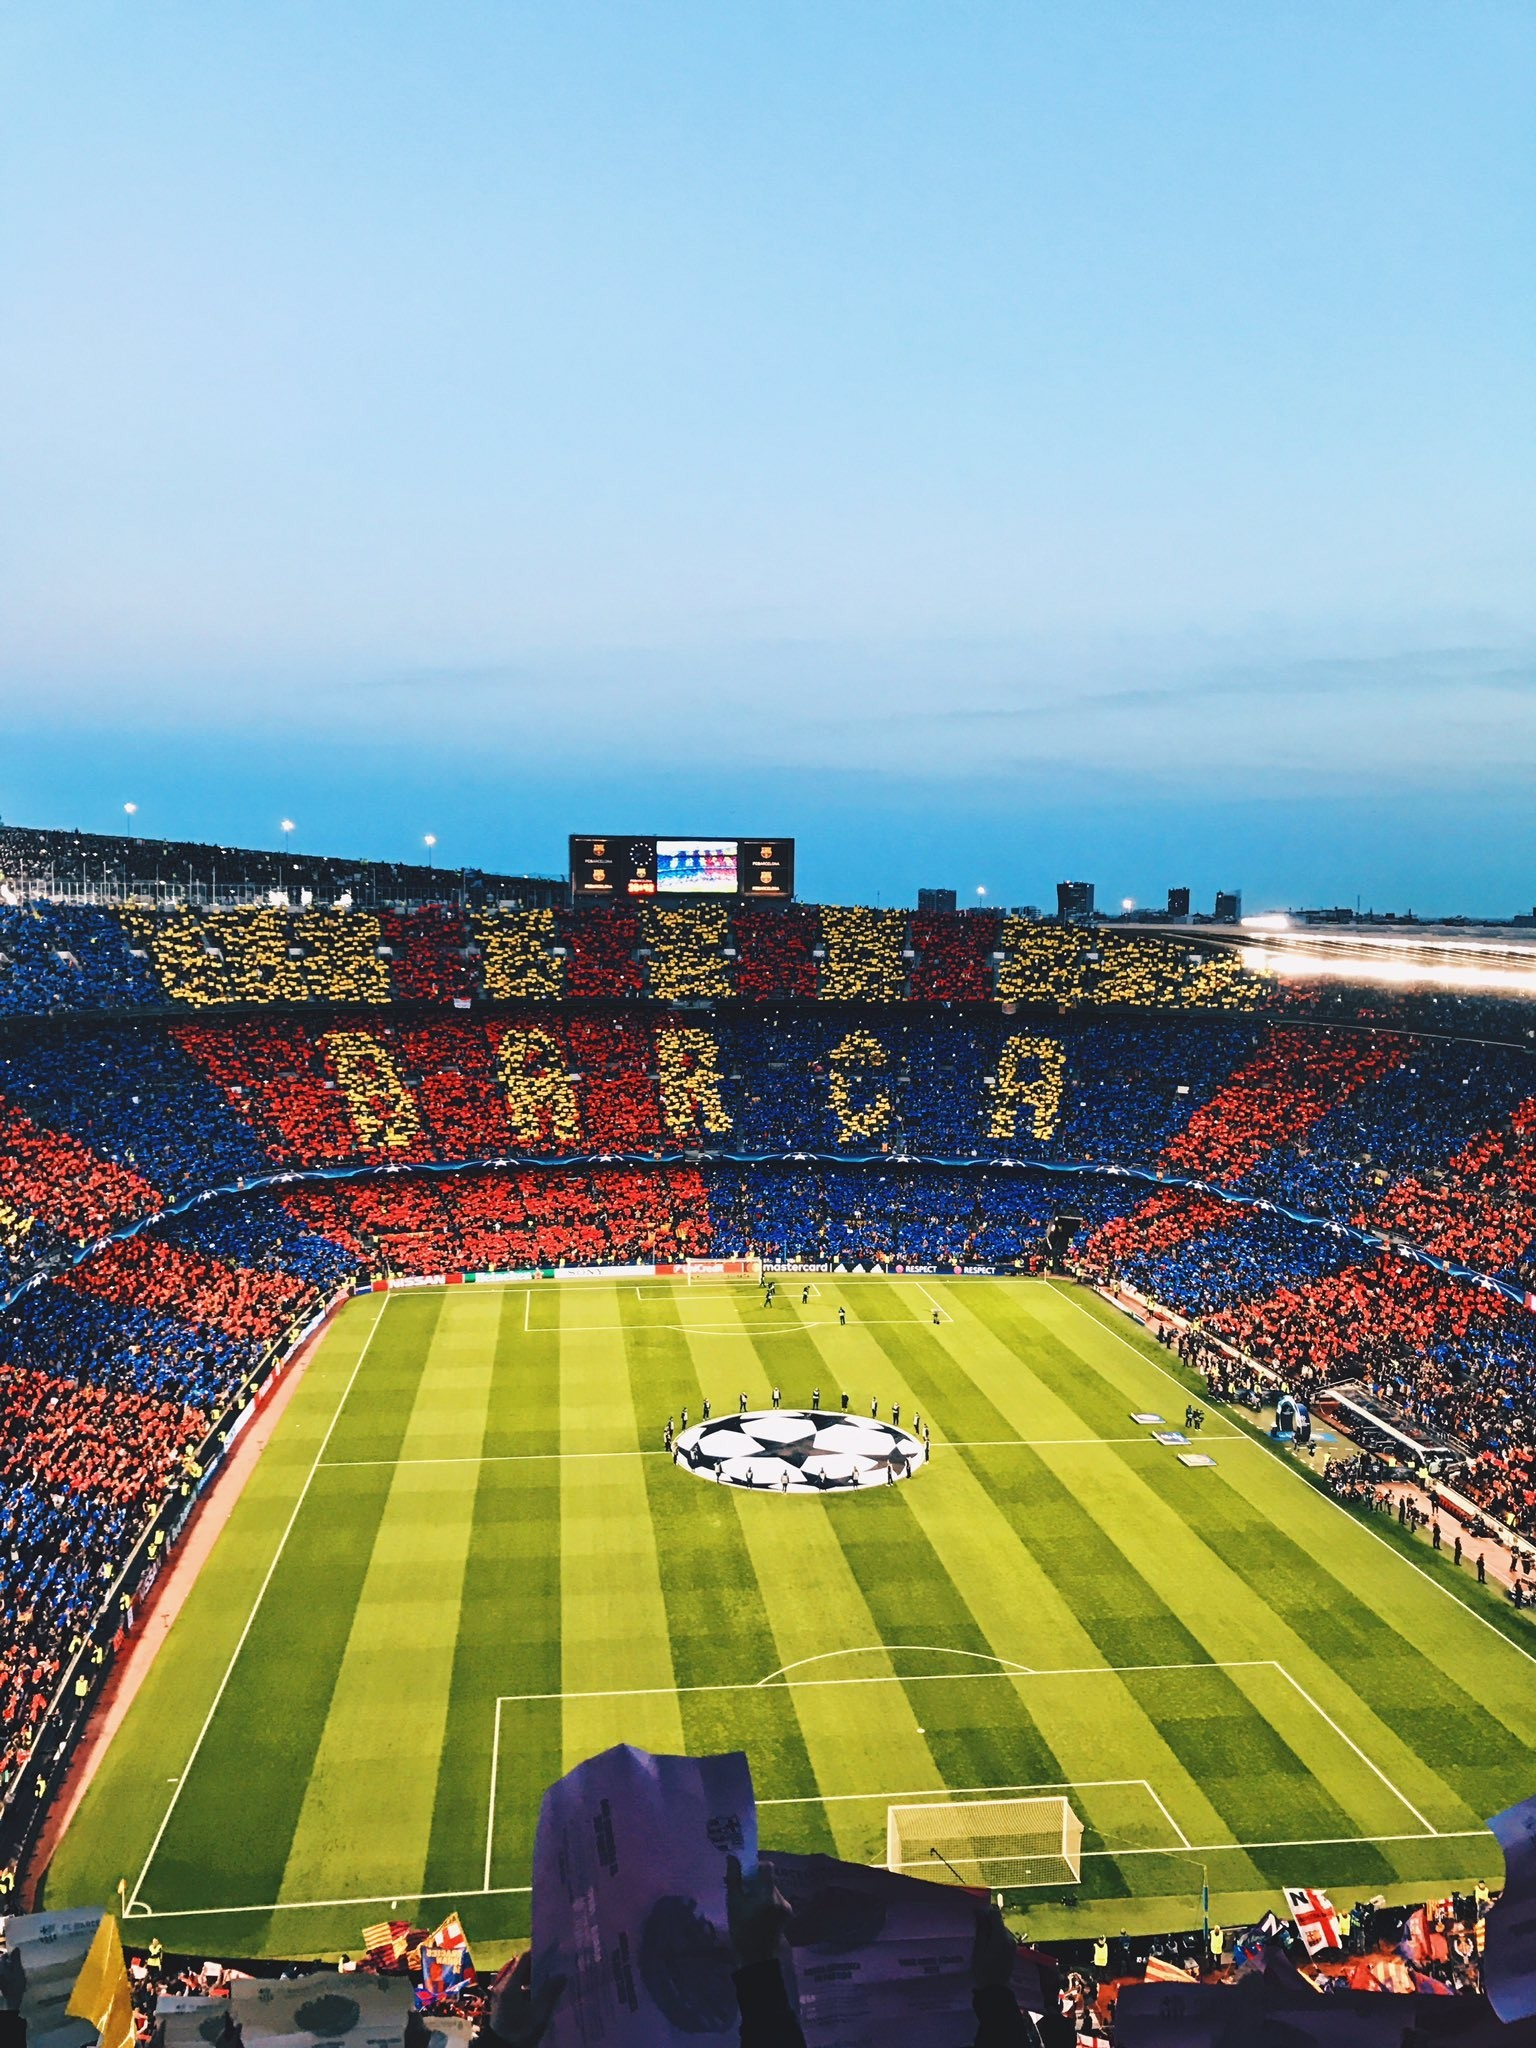 Camp nou wallpaper wallpapertag - Camp nou 4k wallpaper ...